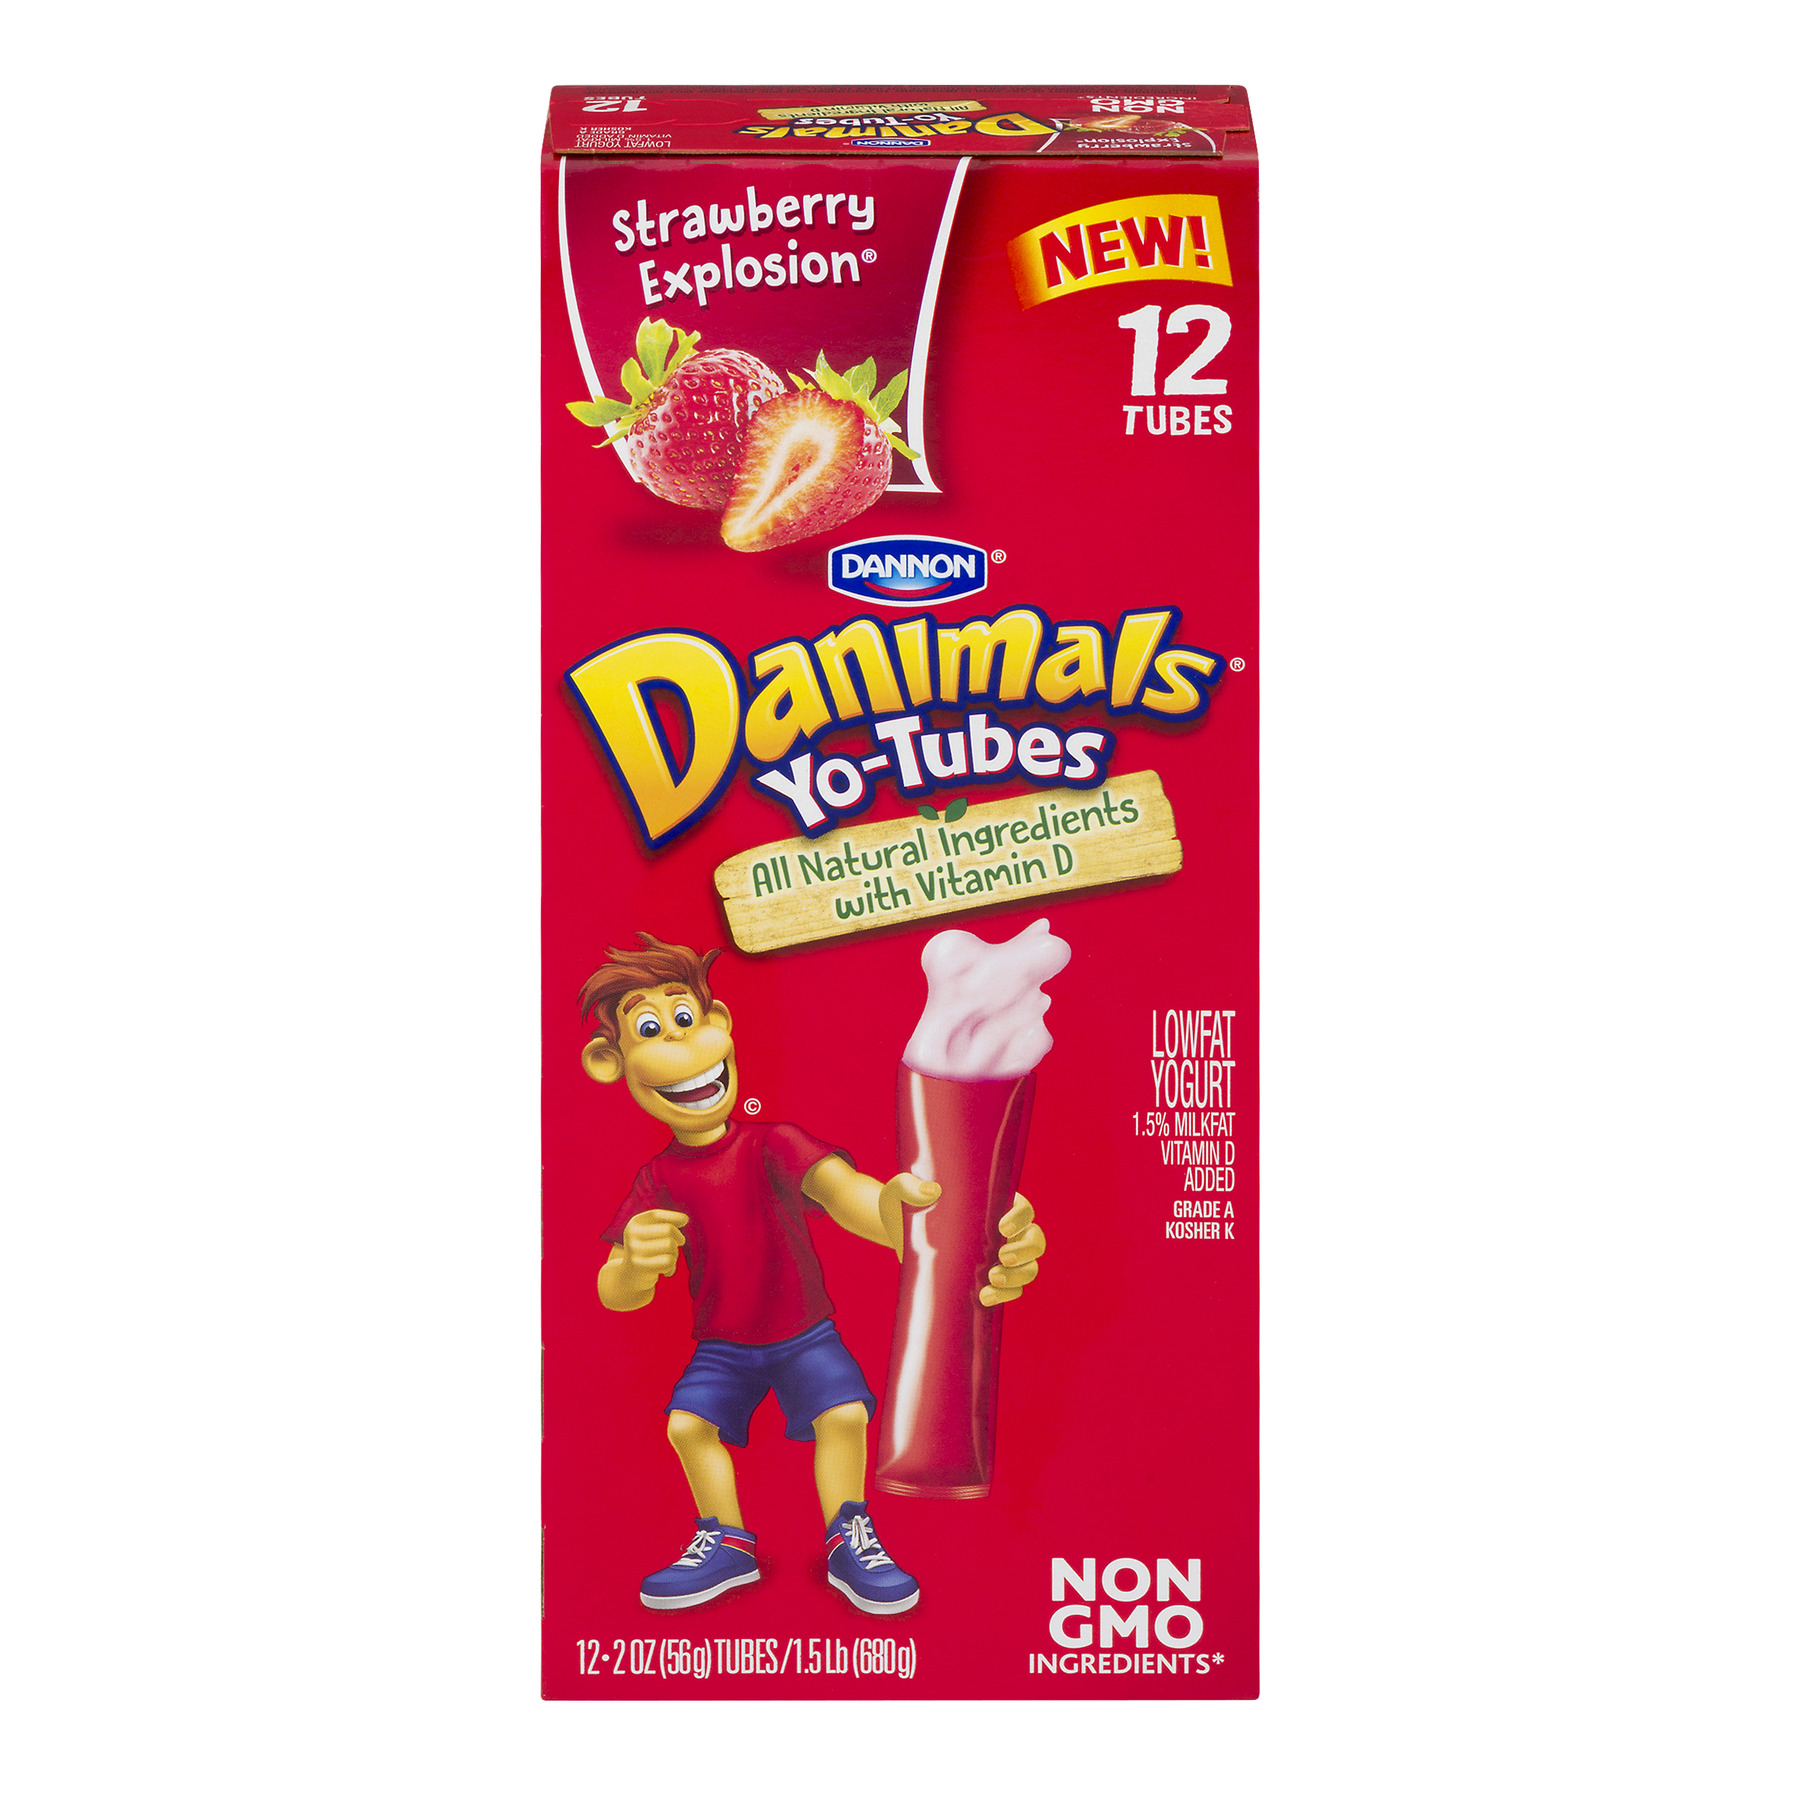 Dannon Danimals Yo-Tubes Lowfat Yogurt Strawberry Explosion - 12 CT